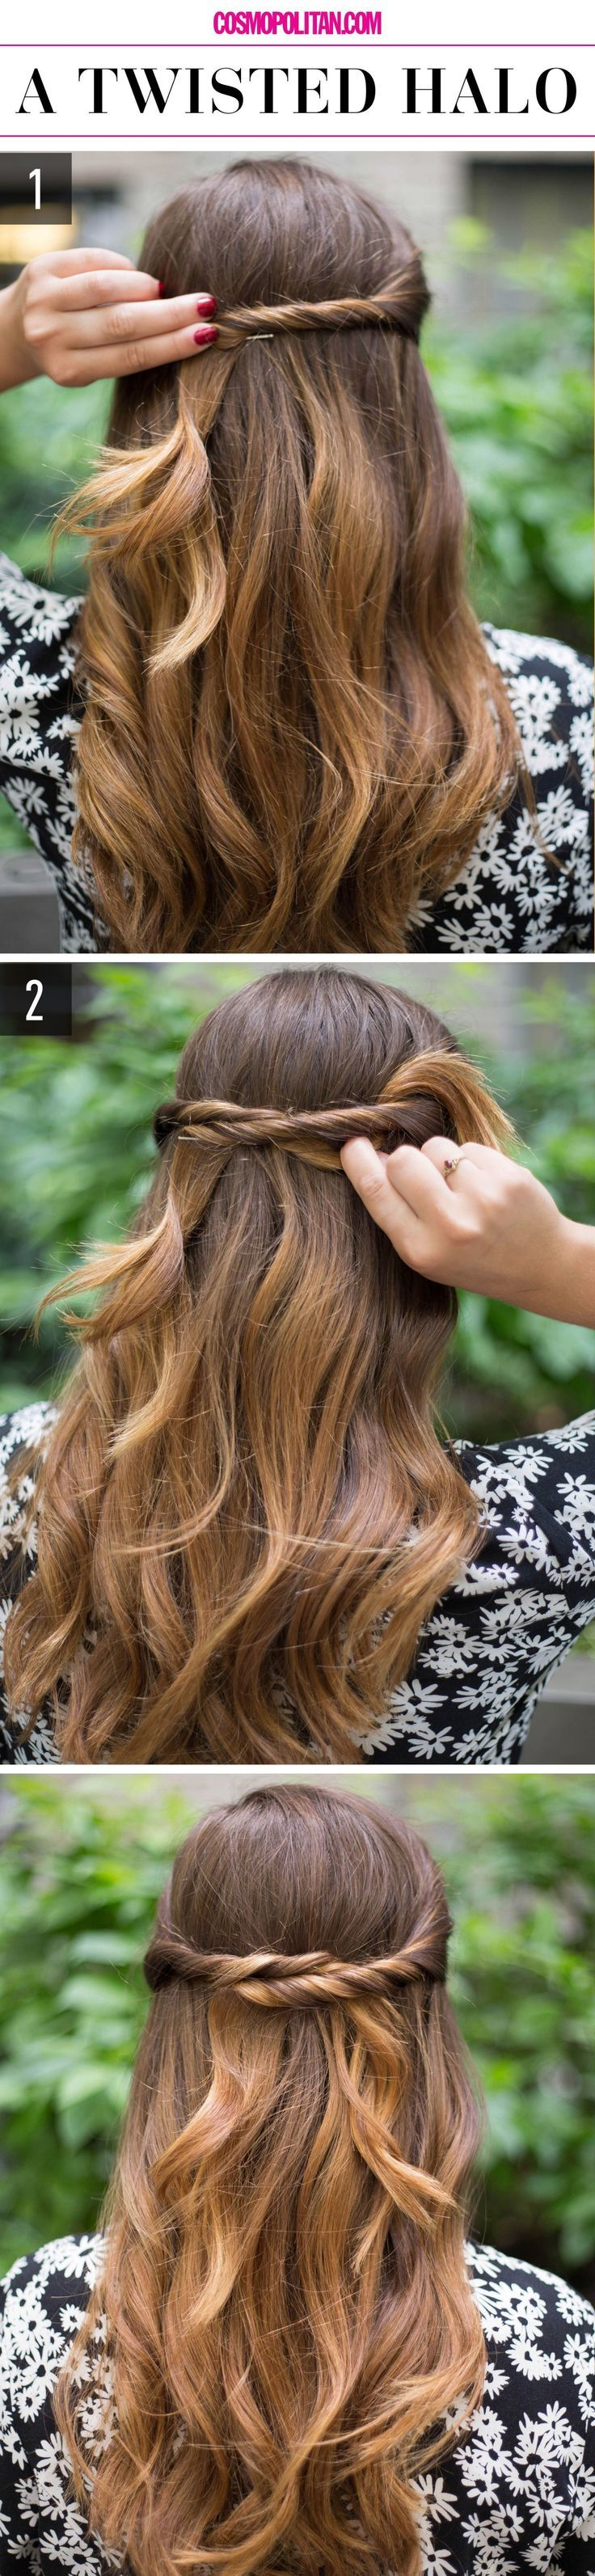 15 super-easy hairstyles for lazy girls. Easy hair up dos for both long hair and medium length hair.  Hair up doso for lazy girls. Easy to achieve and looks great.